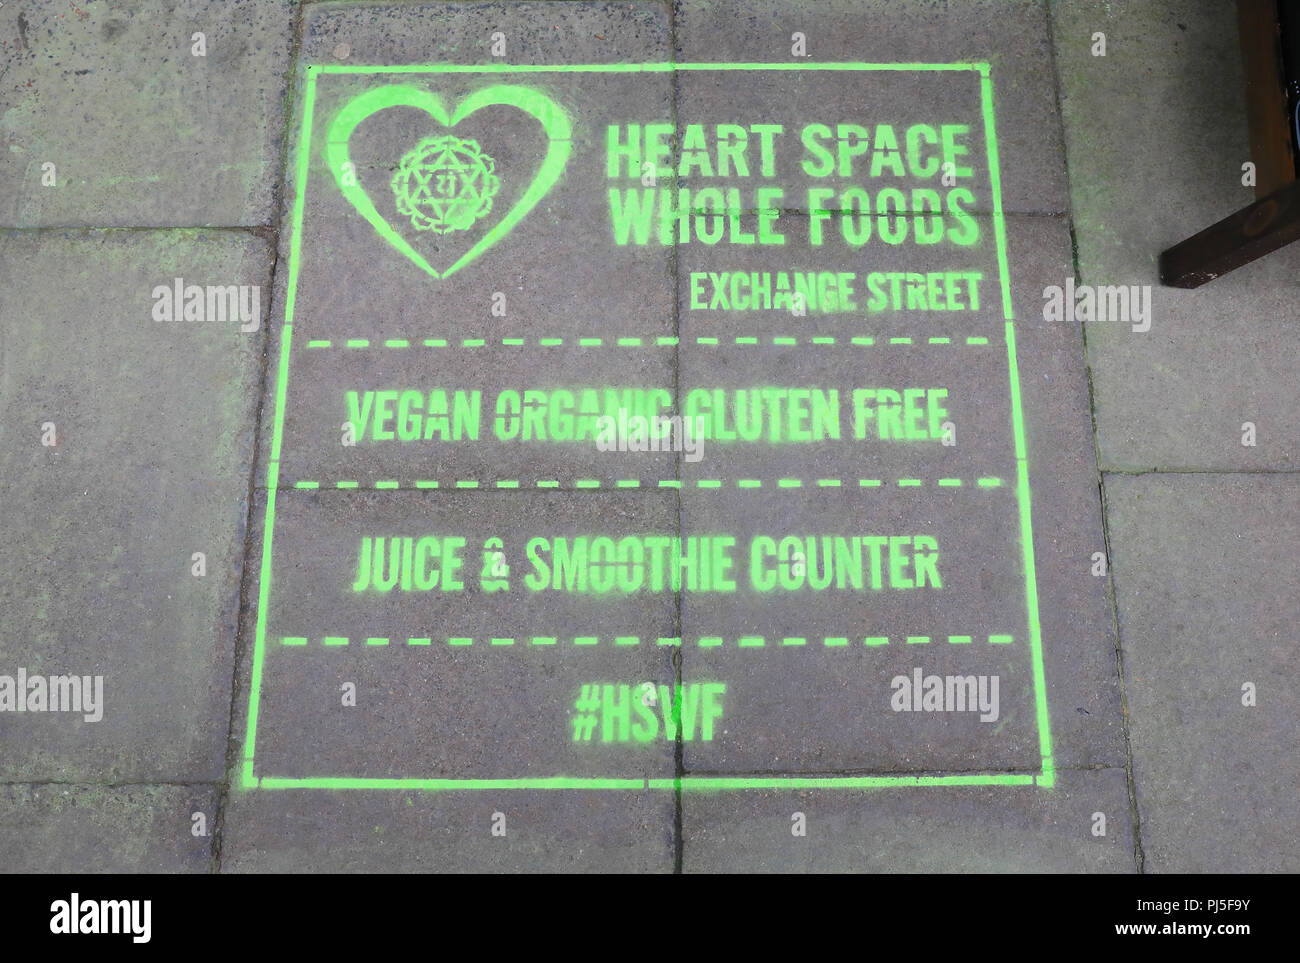 Heart Space Whole Foods on Exchange Street in central Dundee, the 'City of Discovery', in Scotland, UK Stock Photo